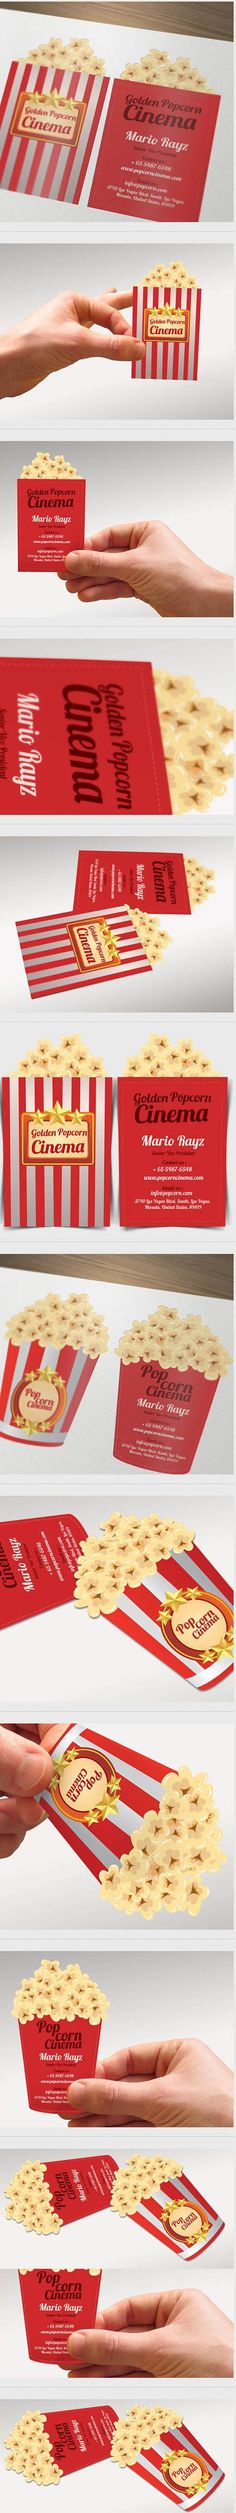 Looks good enough to eat! Inspirational Popcorn Cinema Business Card